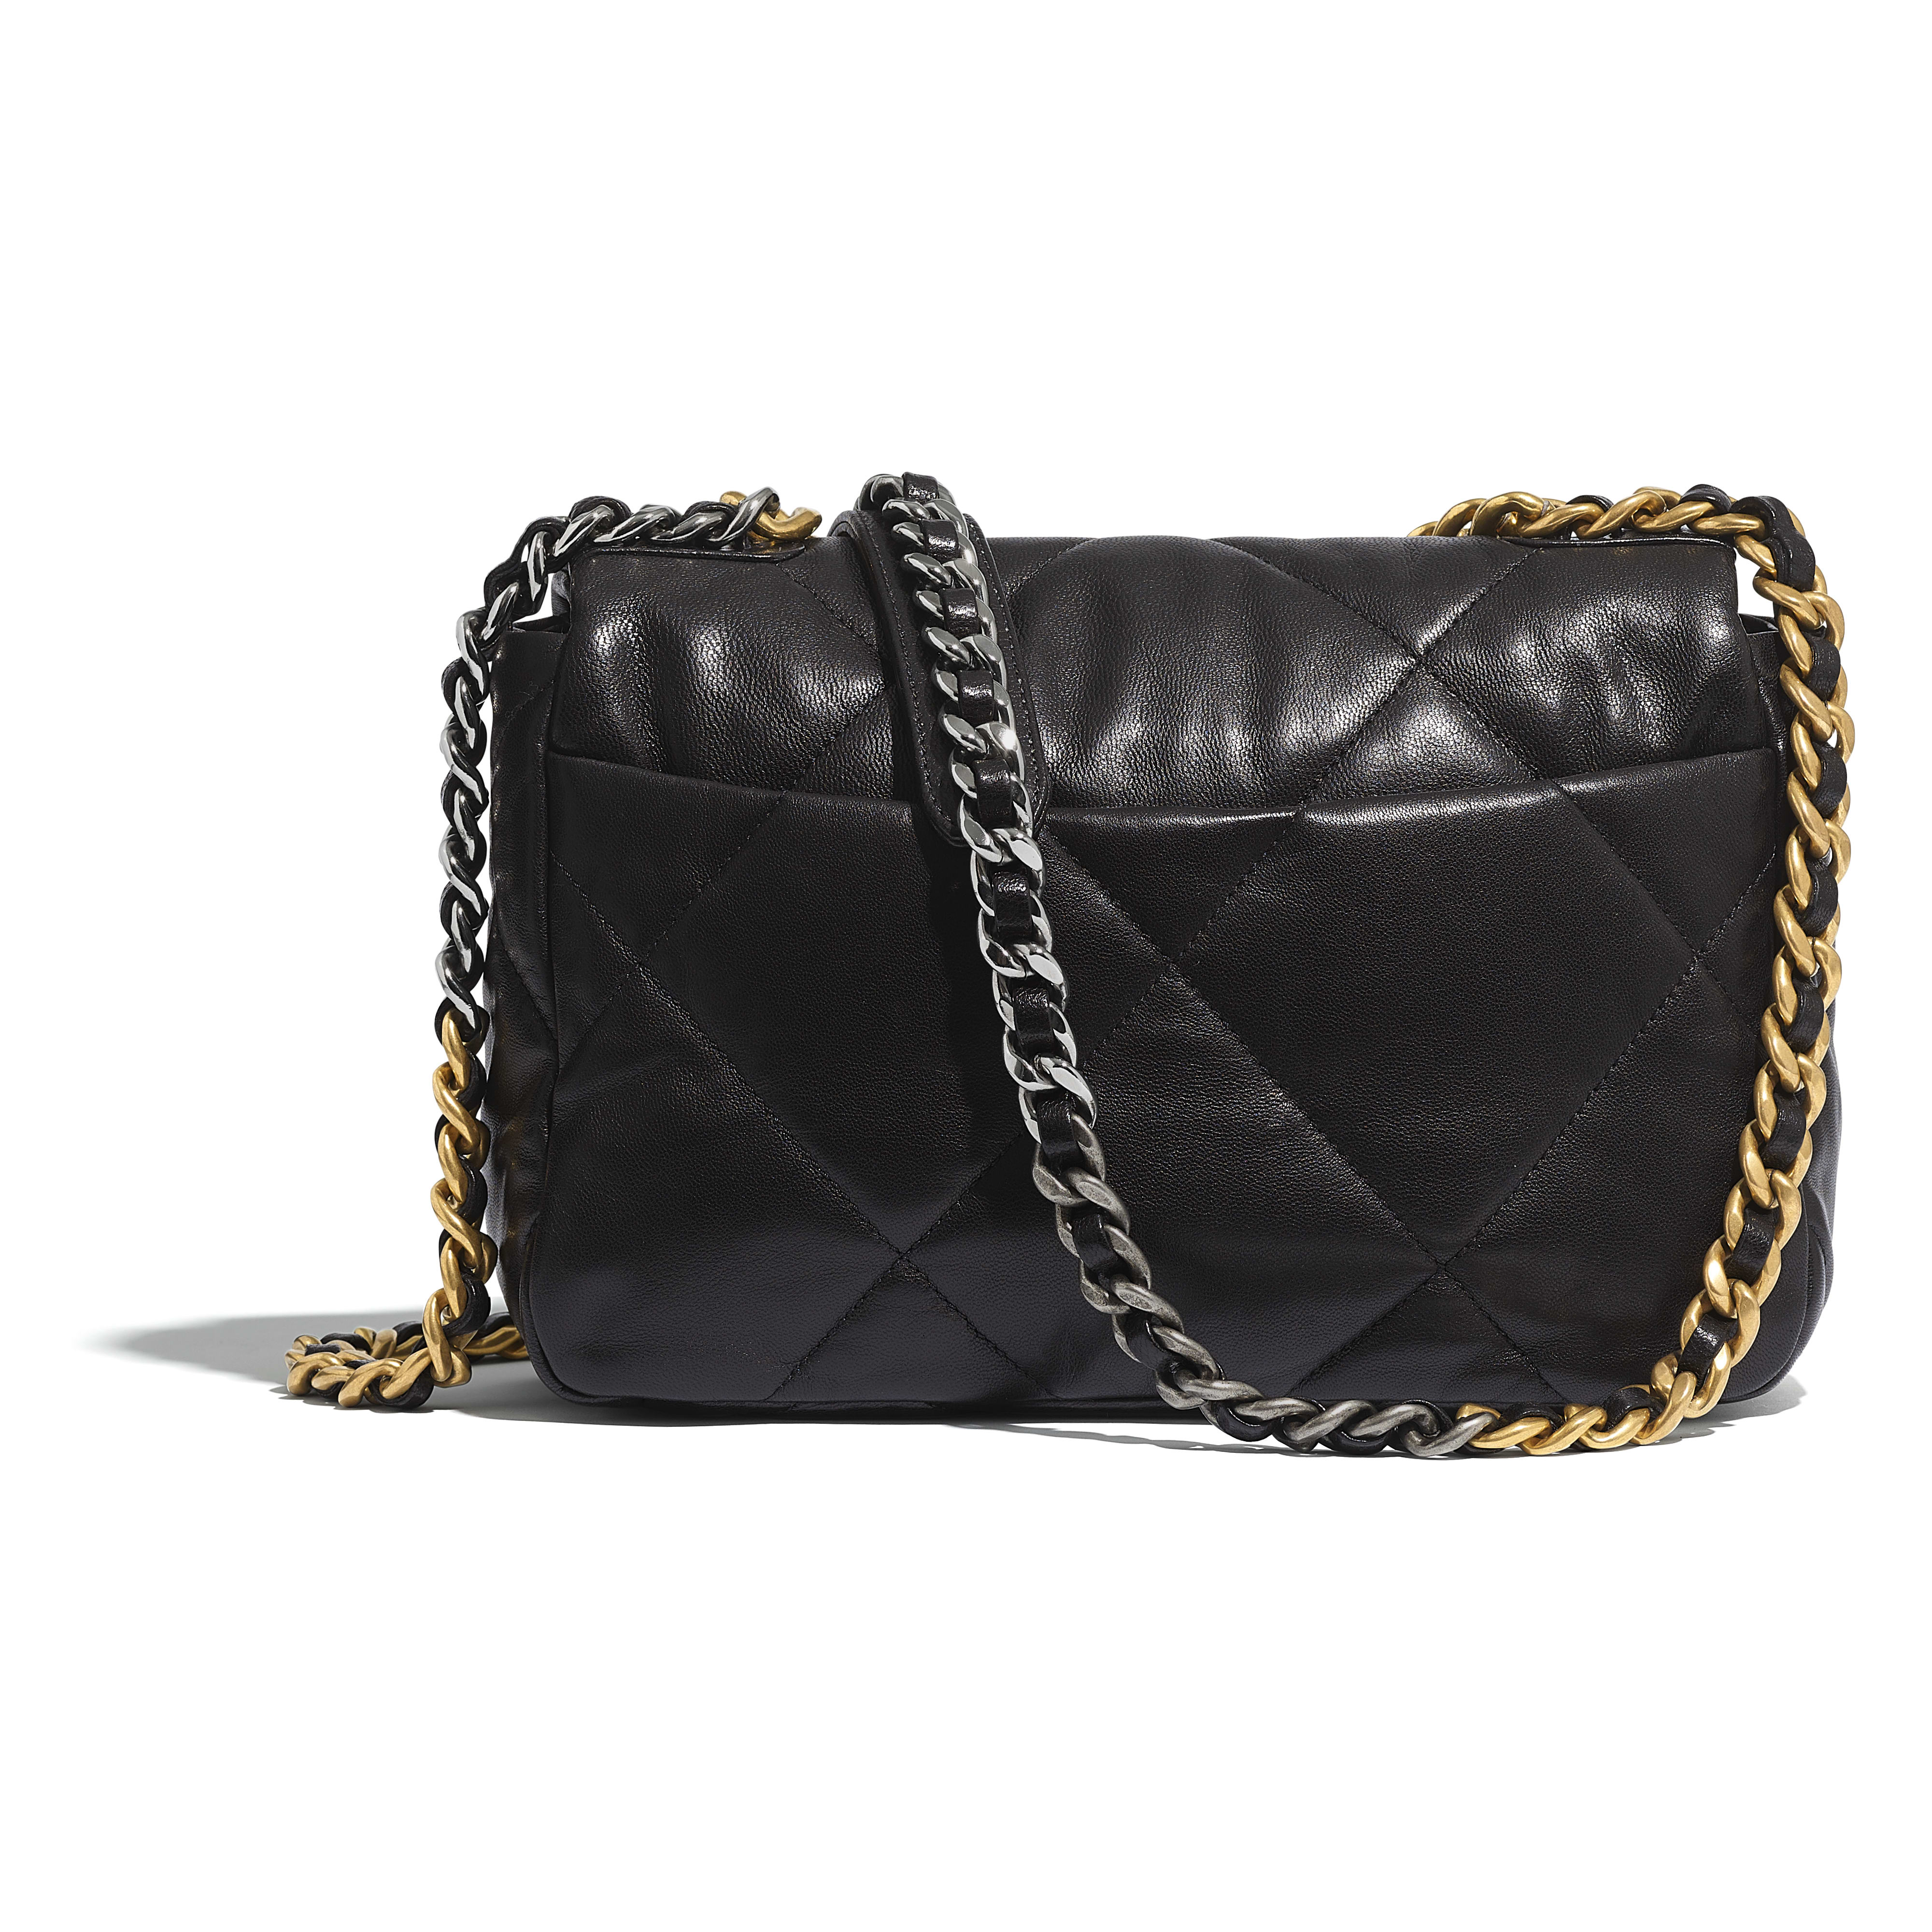 CHANEL 19 Flap Bag - Black - Goatskin, Gold-Tone, Silver-Tone & Ruthenium-Finish Metal - CHANEL - Alternative view - see standard sized version